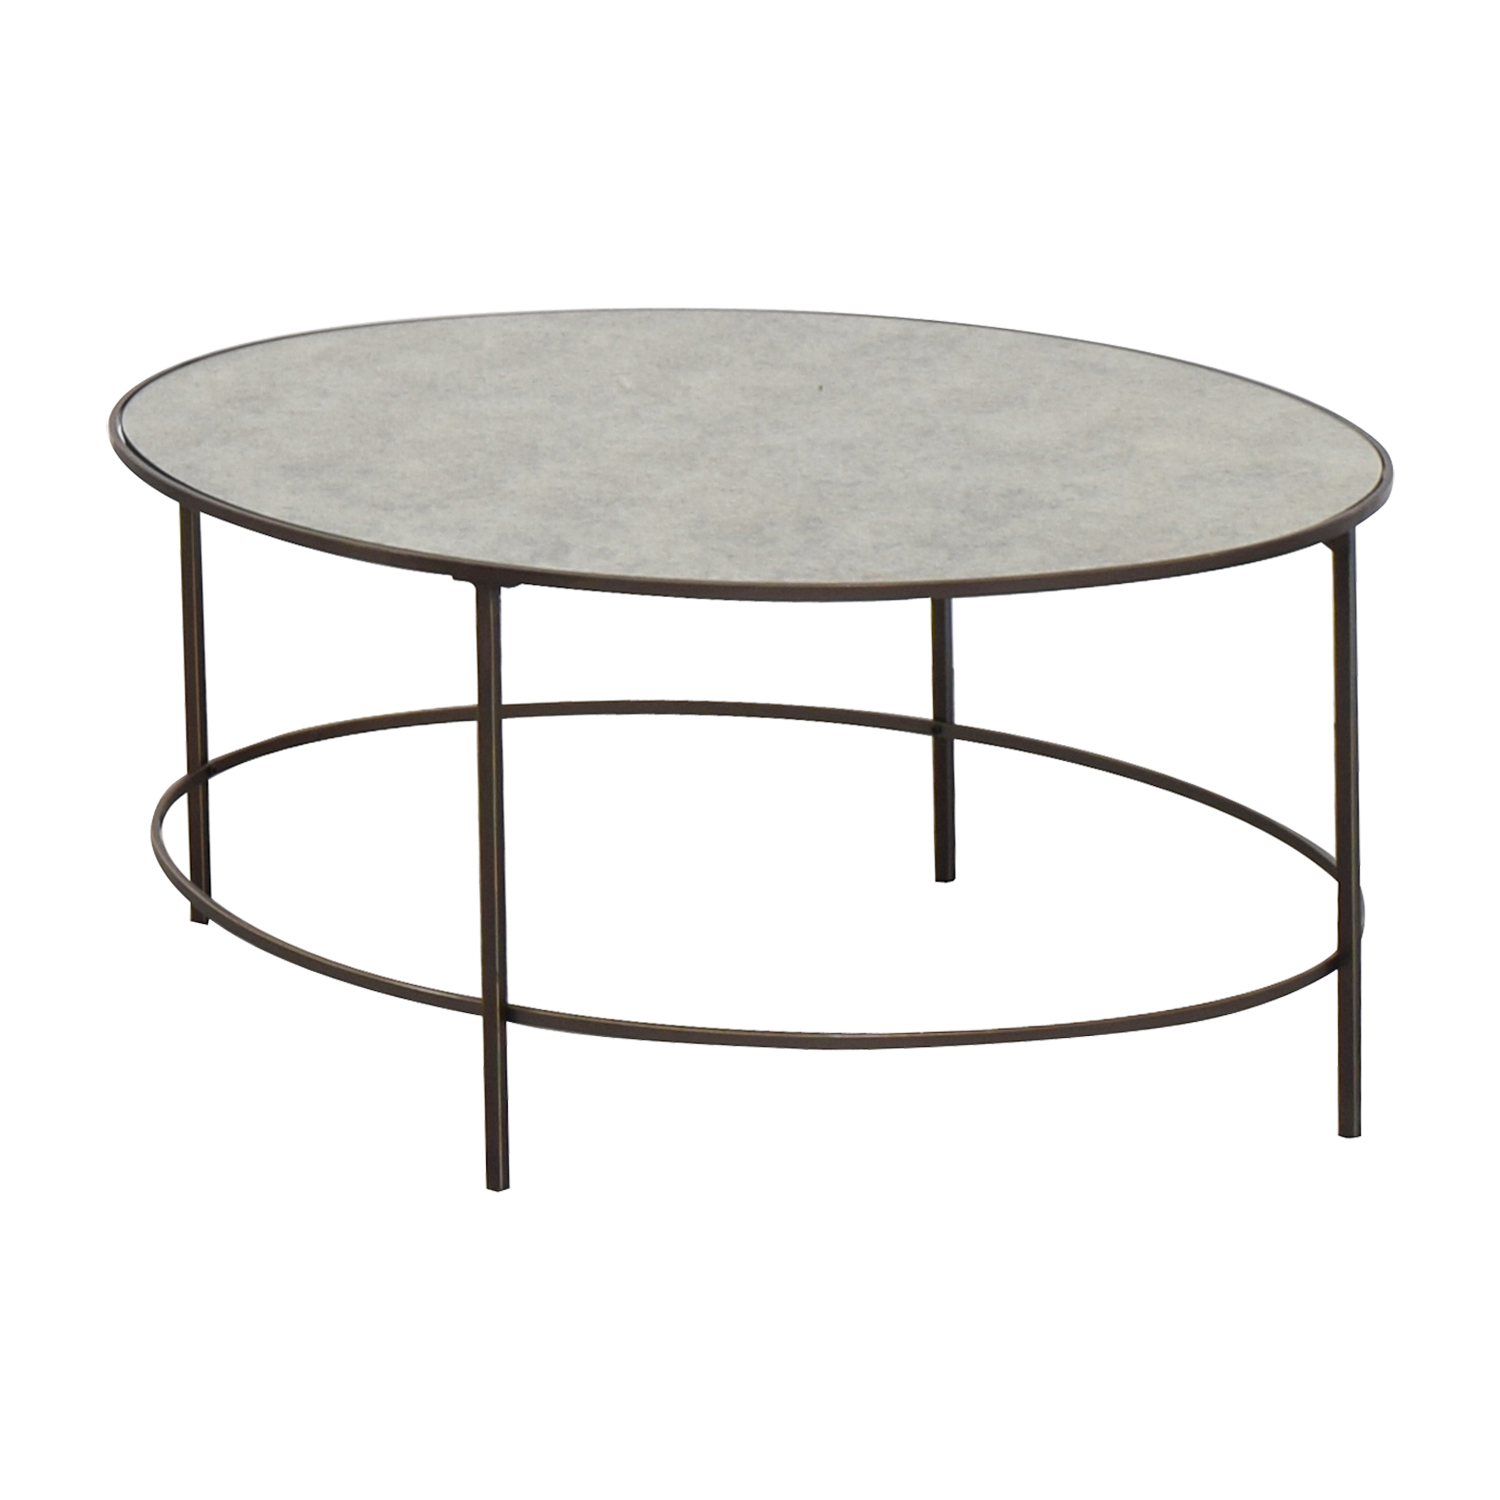 West Elm Oval Metal and Mirror Coffee Table / Tables